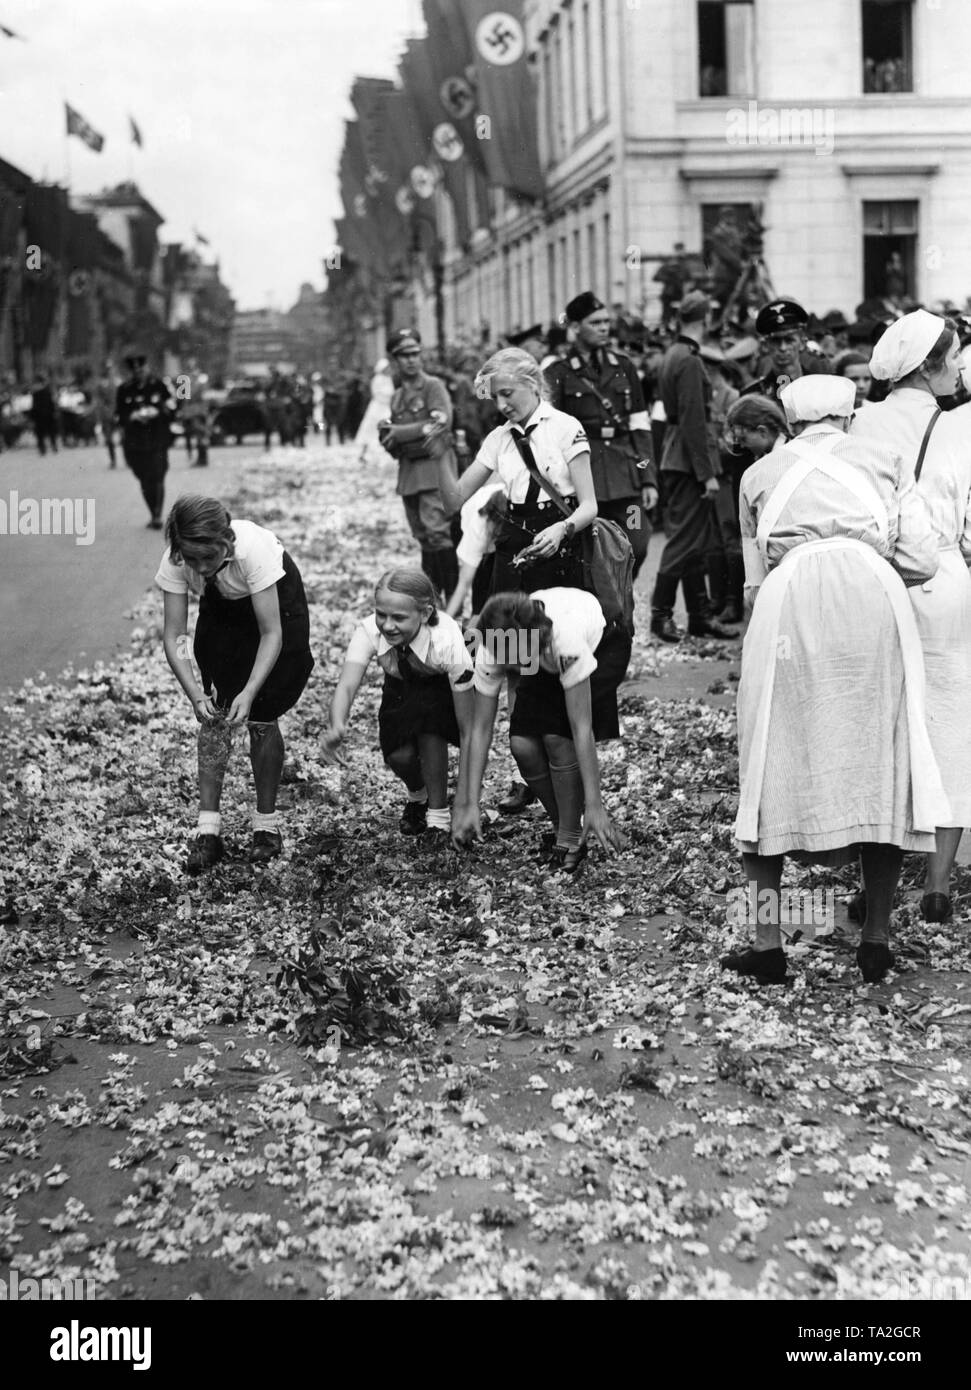 BDM girls decorate the streets with flowers on the occasion of a visit to the Fuhrer in Berlin in August 1940. - Stock Image